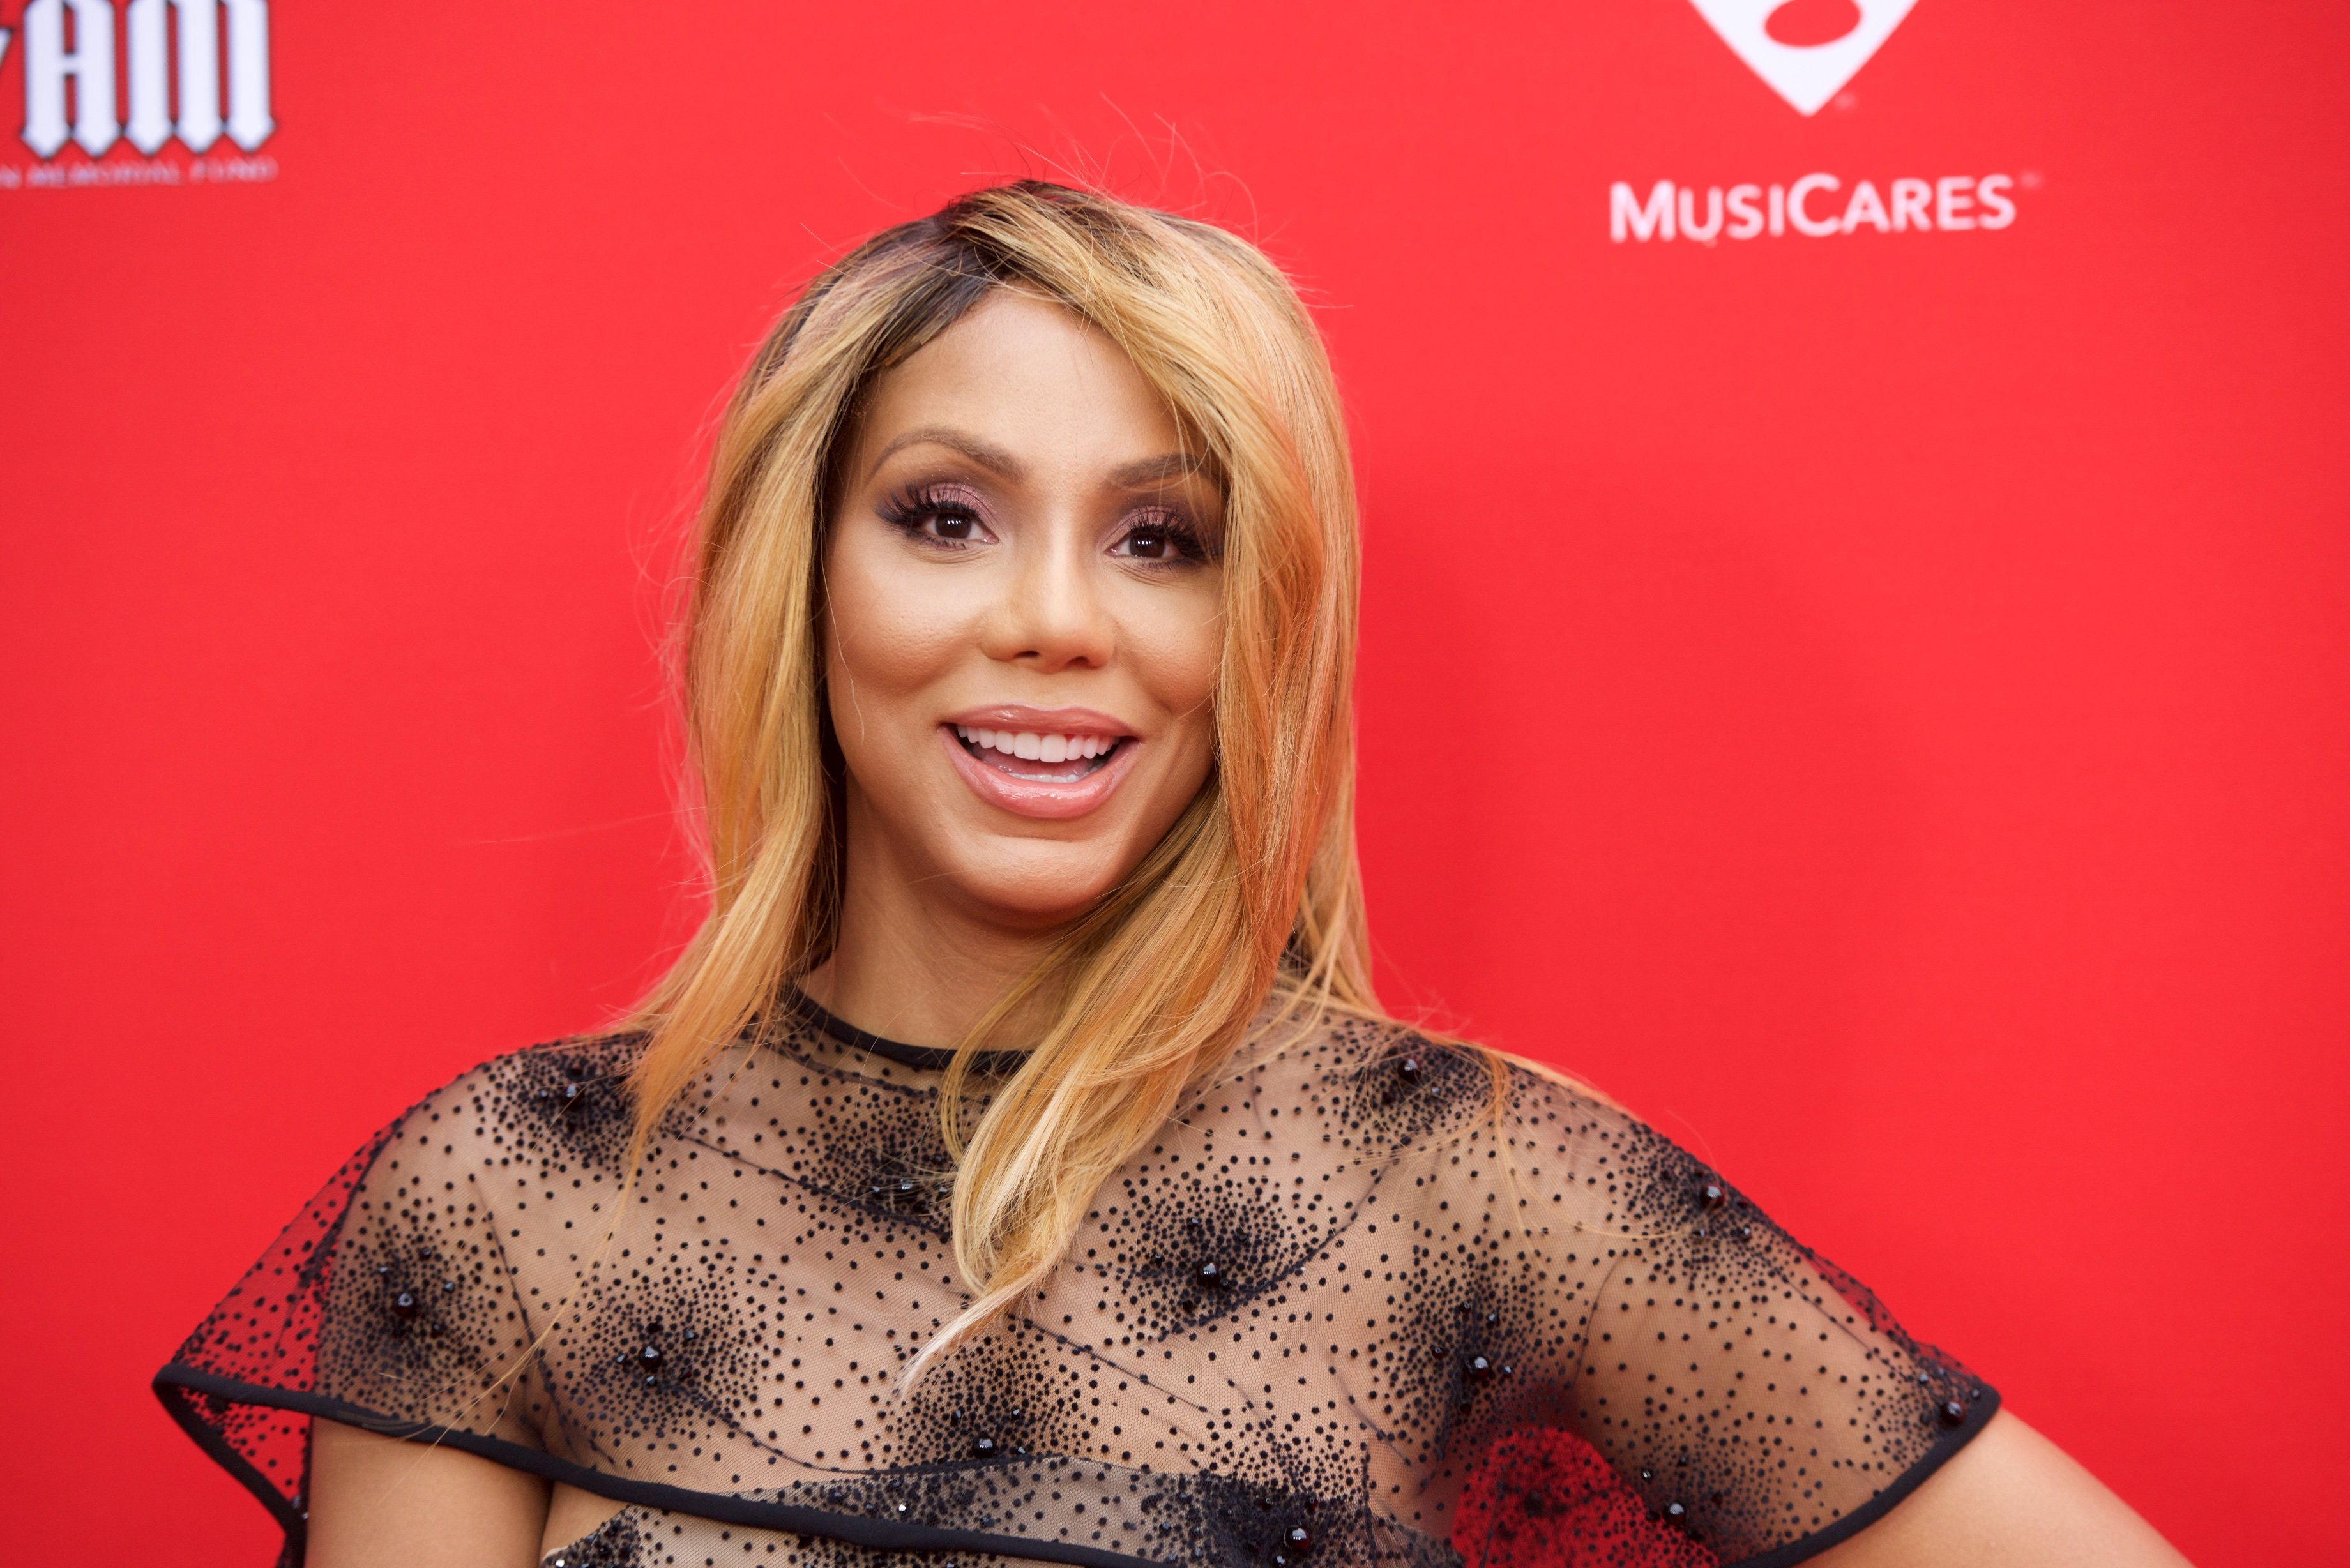 Tamar Braxton at the 12th Annual MusiCares MAP Fund Tribute Concert on May 19, 2016 in California | Photo: Getty Images